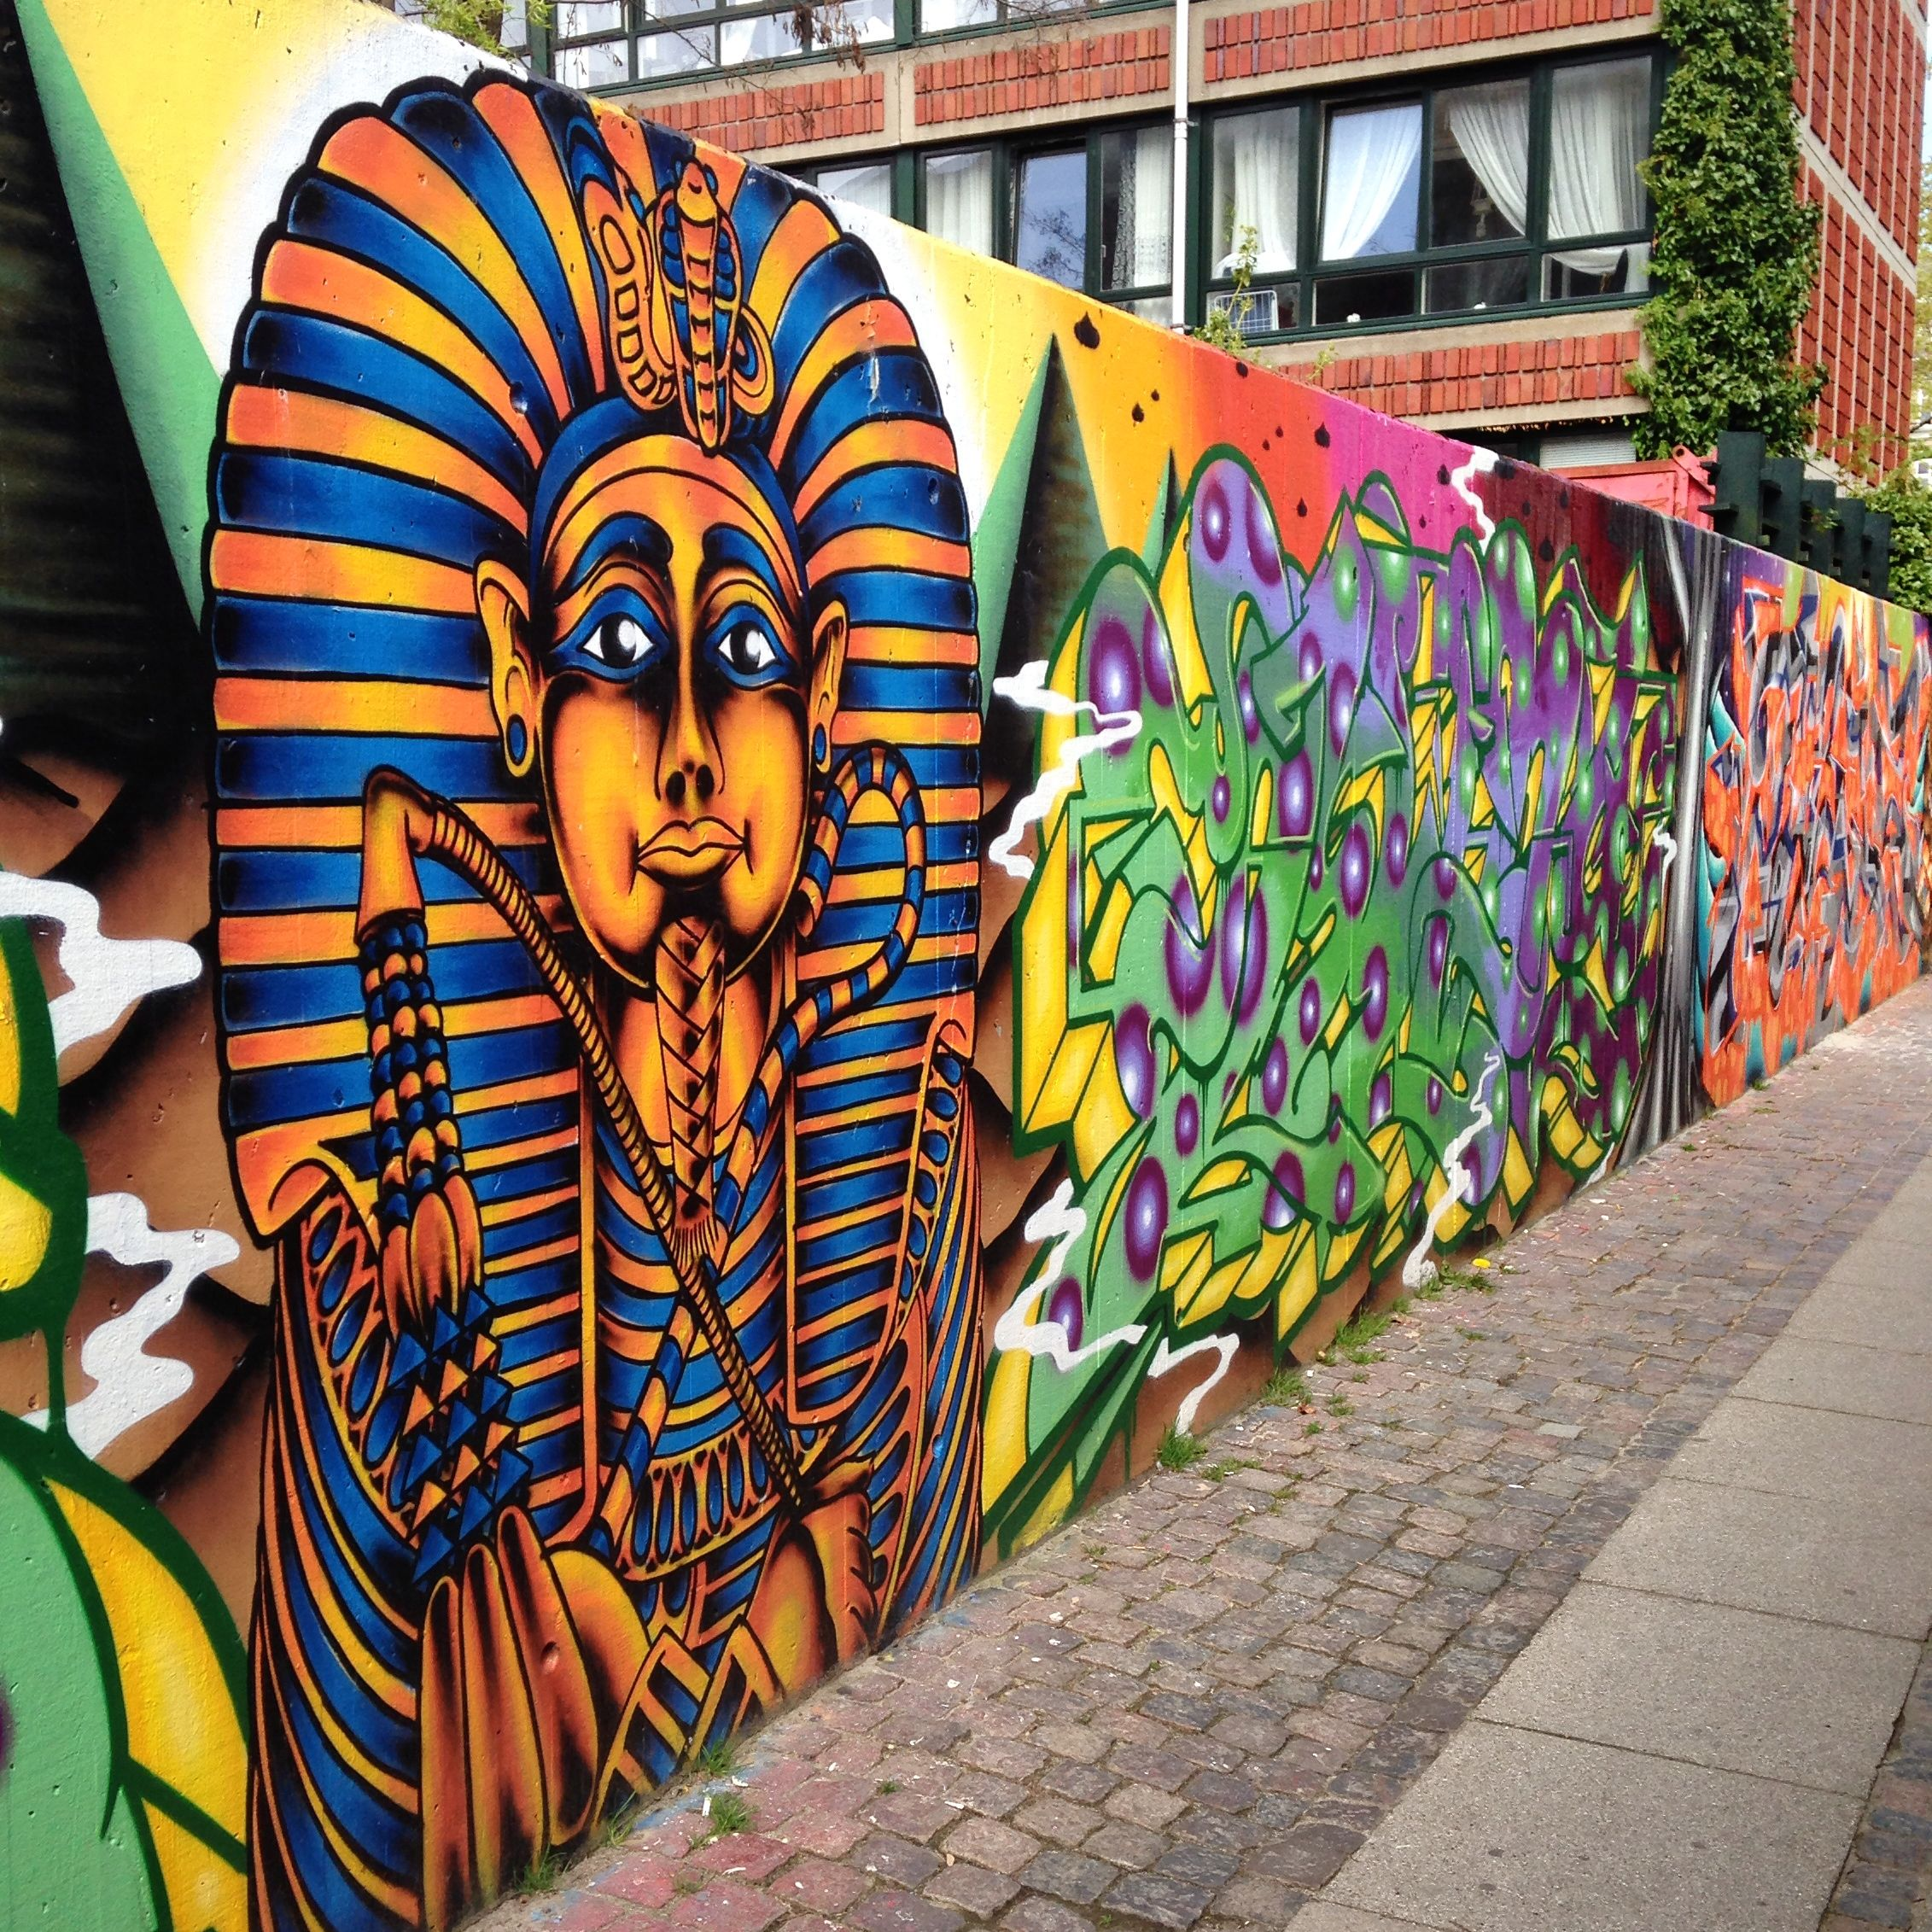 Beautiful Egyptian street art painting in Vesterbro